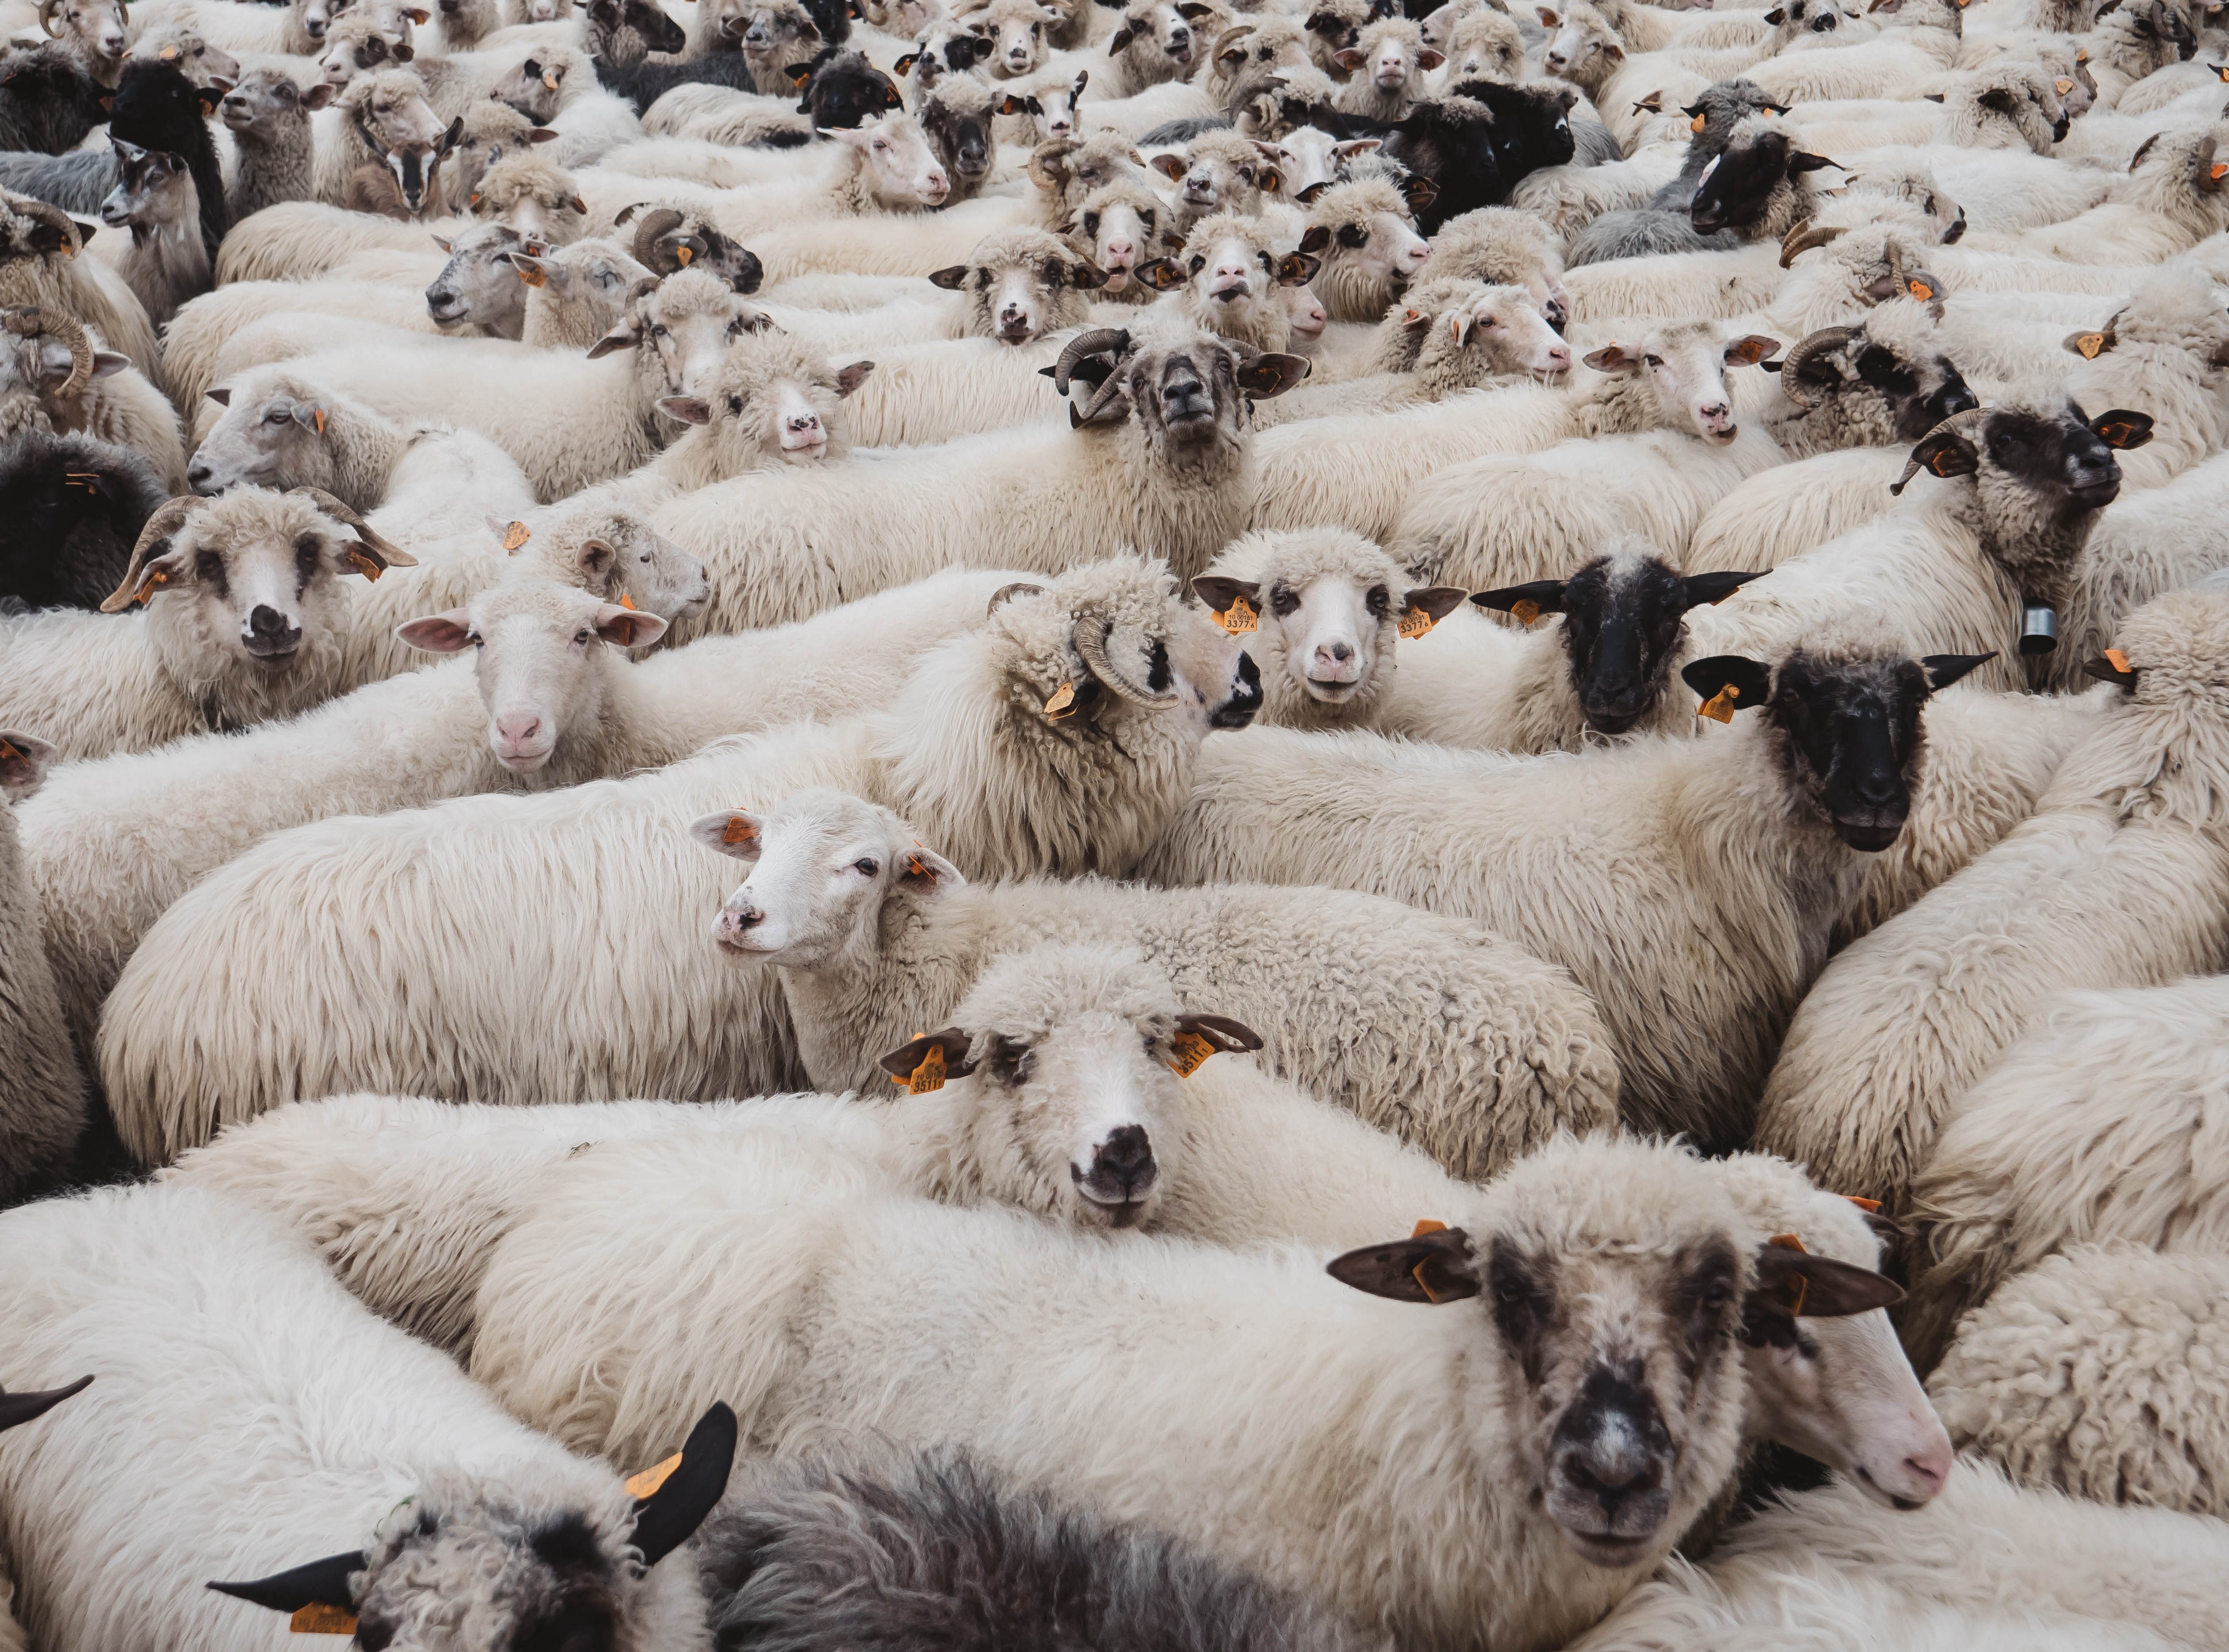 A group of identical sheep crowded together.